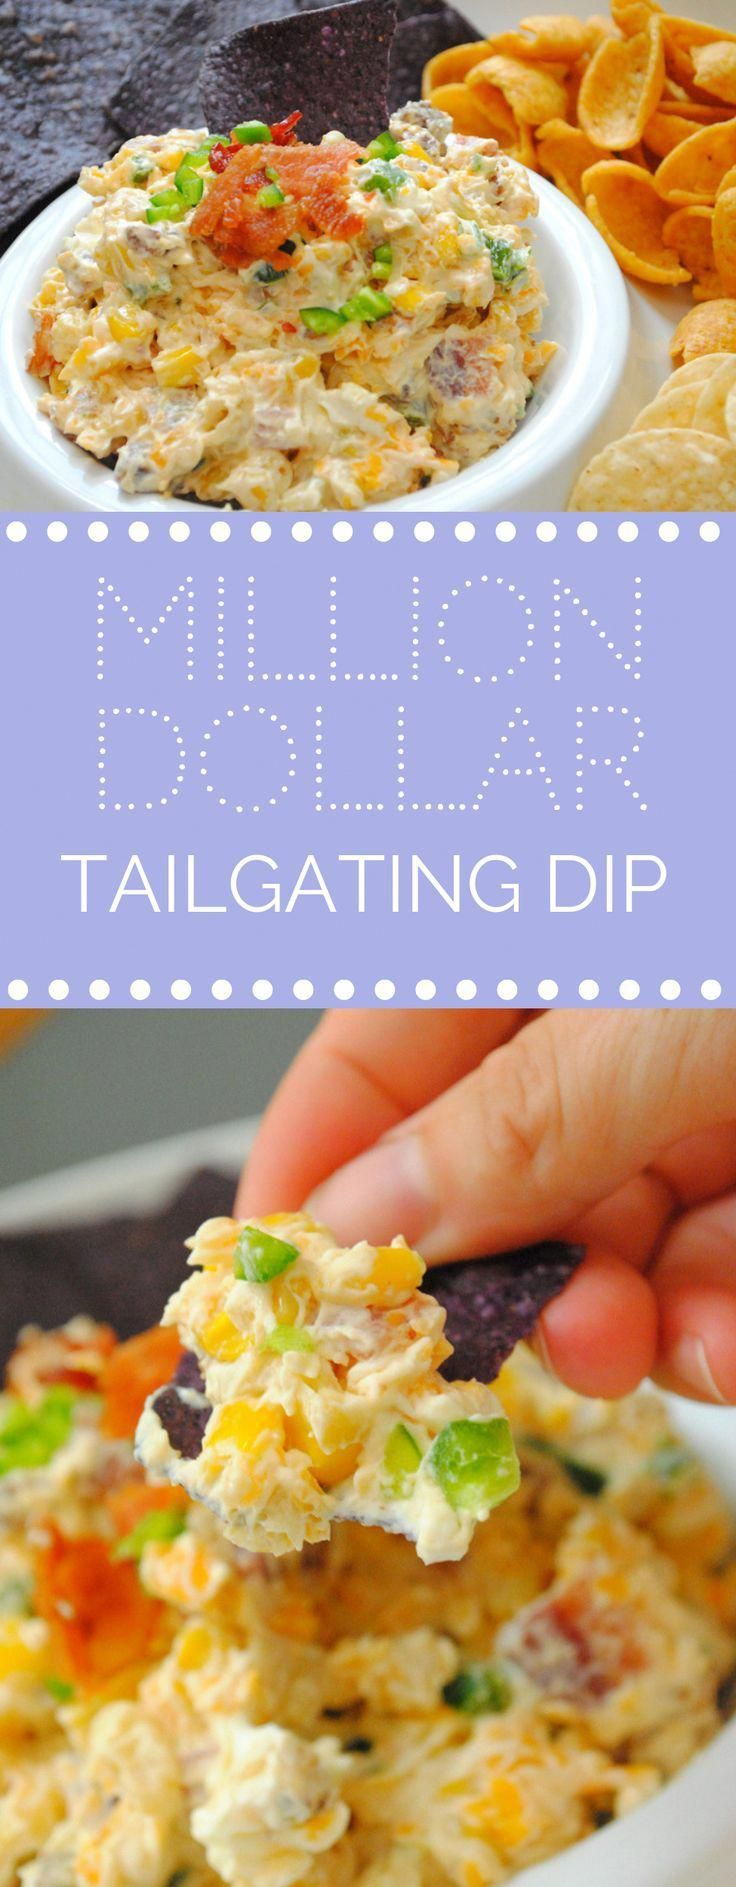 Million Dollar Tailgating Dip - The Anchored Kitchen #gameday #tailgating #dip #appetizer #sundayfootball #cheesedip #bacon #tailgatefoodappetizers #milliondollardip